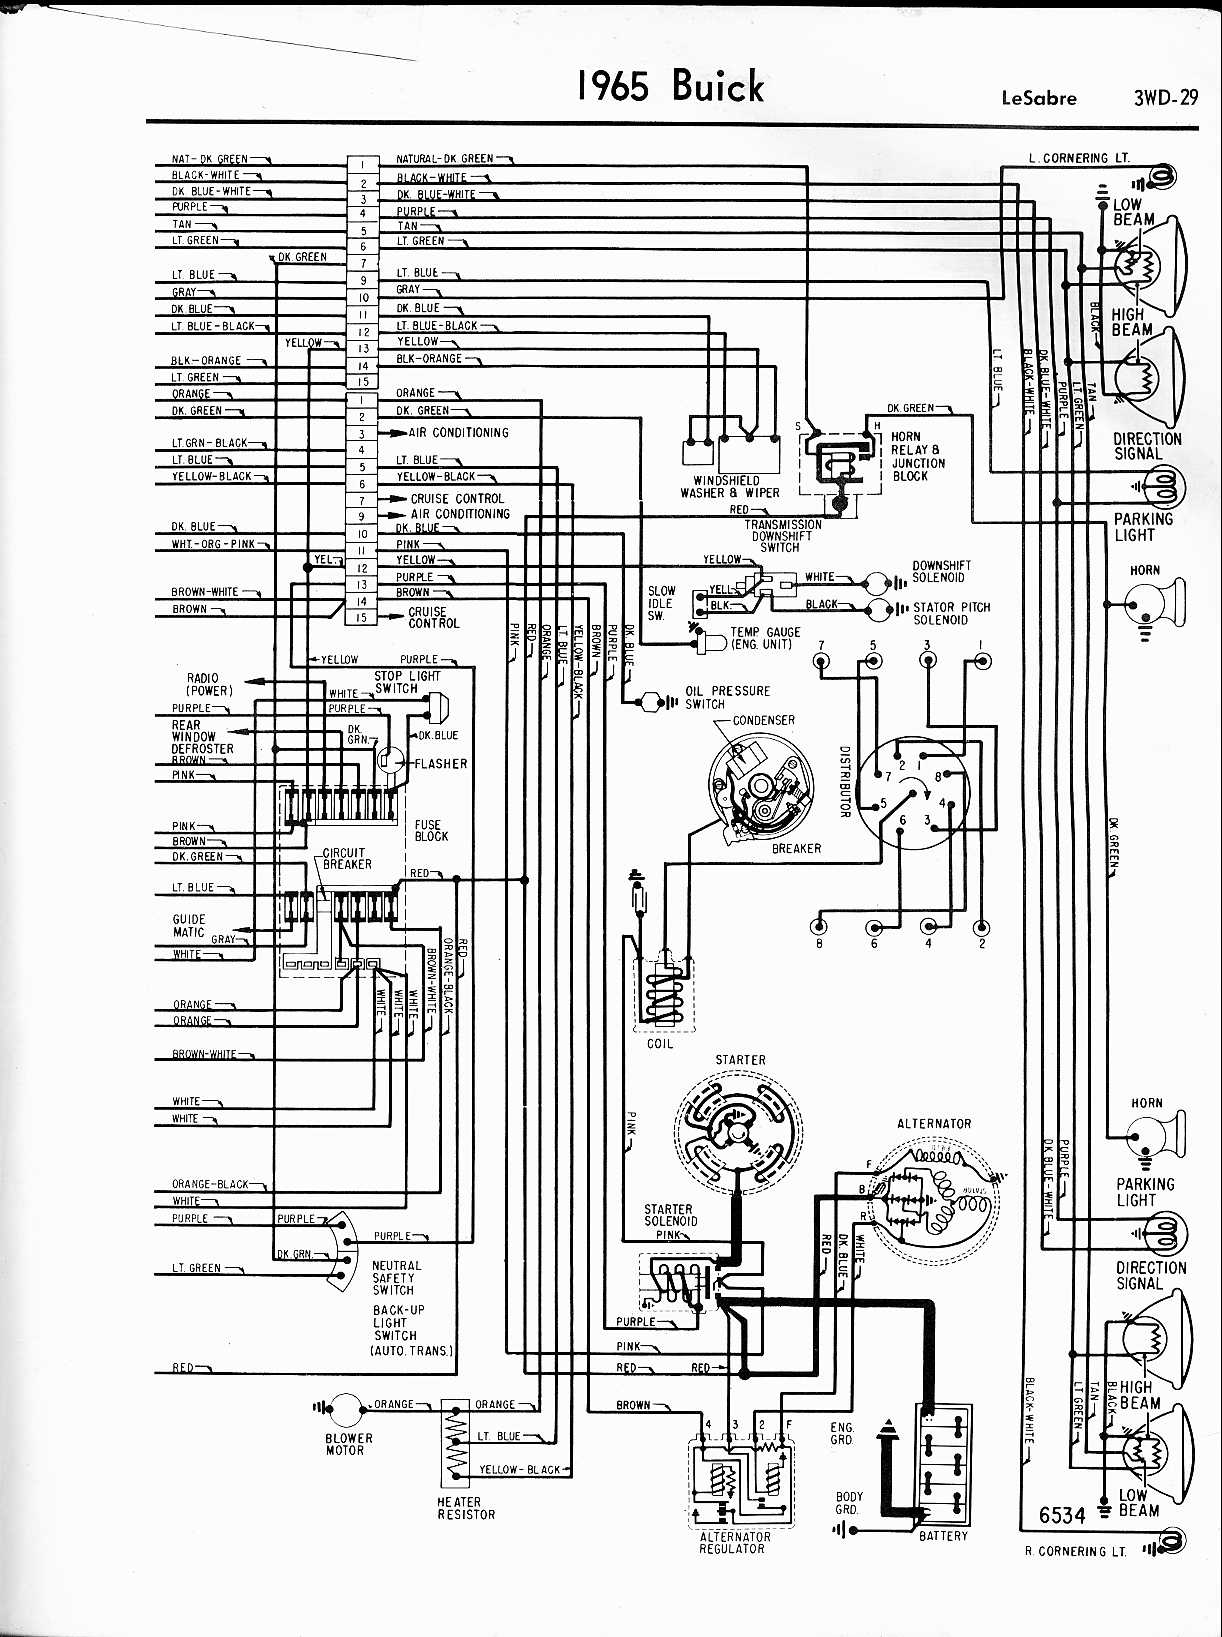 Fuse Box Locations On 1995 Buick Park Avenue | Wiring Diagram  Lesabre Wiring Diagram How To Read on reading electrical diagrams, subaru electrical diagrams, learn to read wiring diagrams,